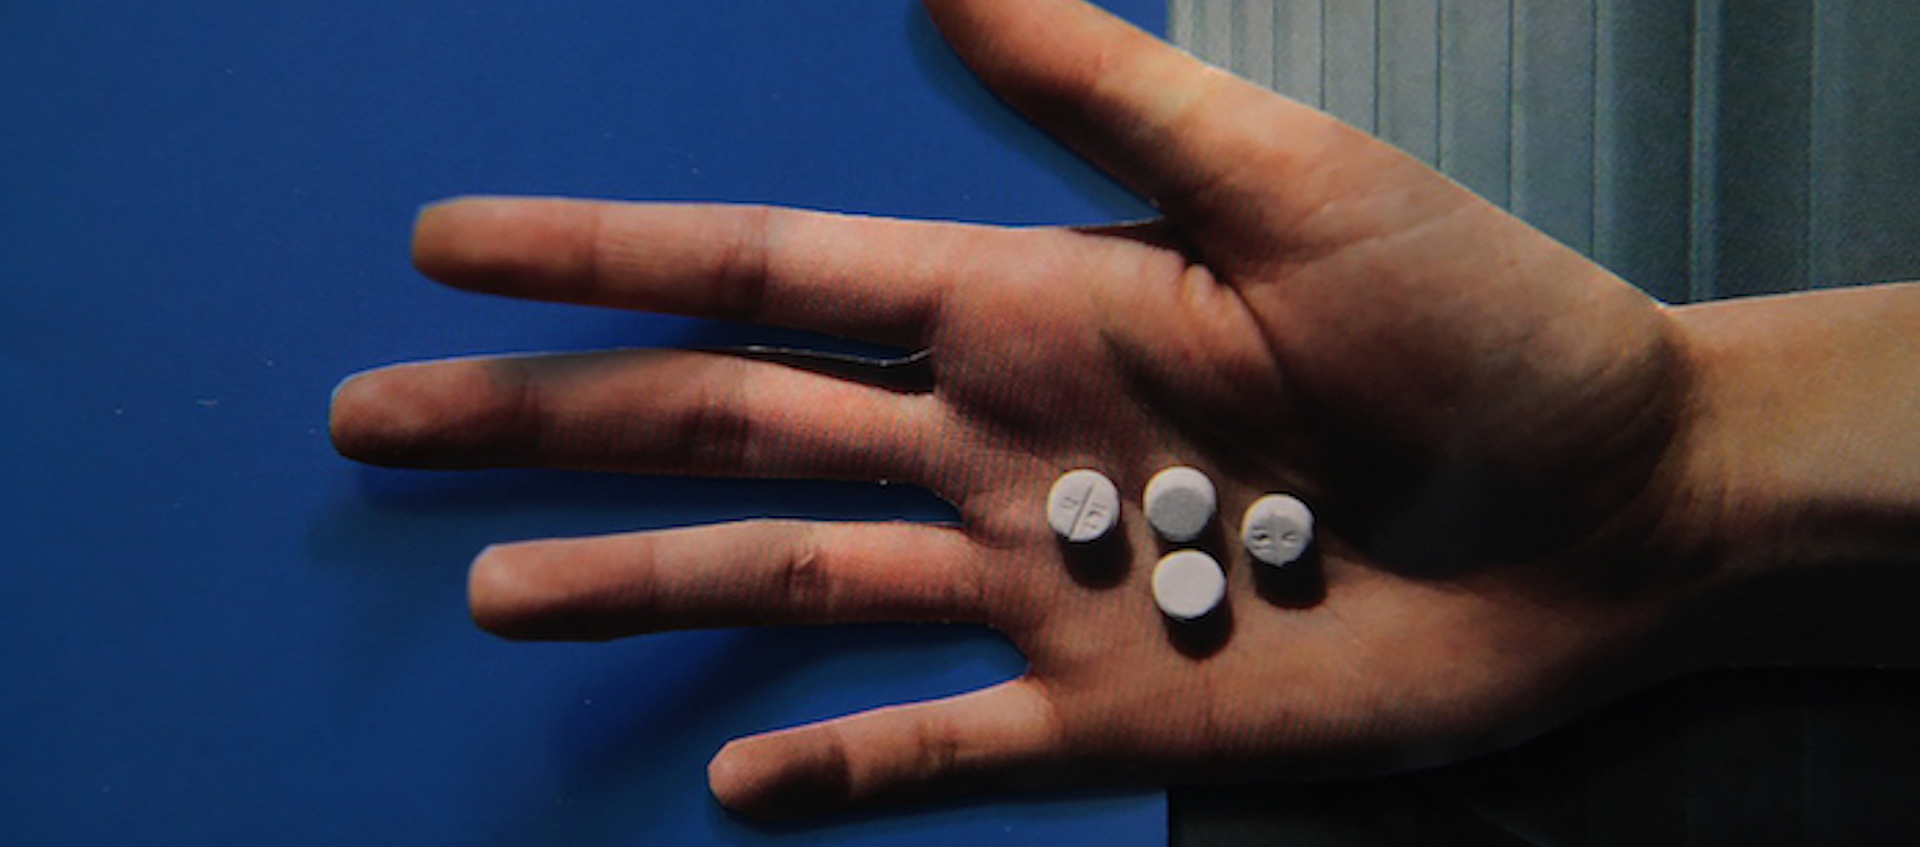 Hand holding pills from Lewis Klahr's Circumstantial Pleasures